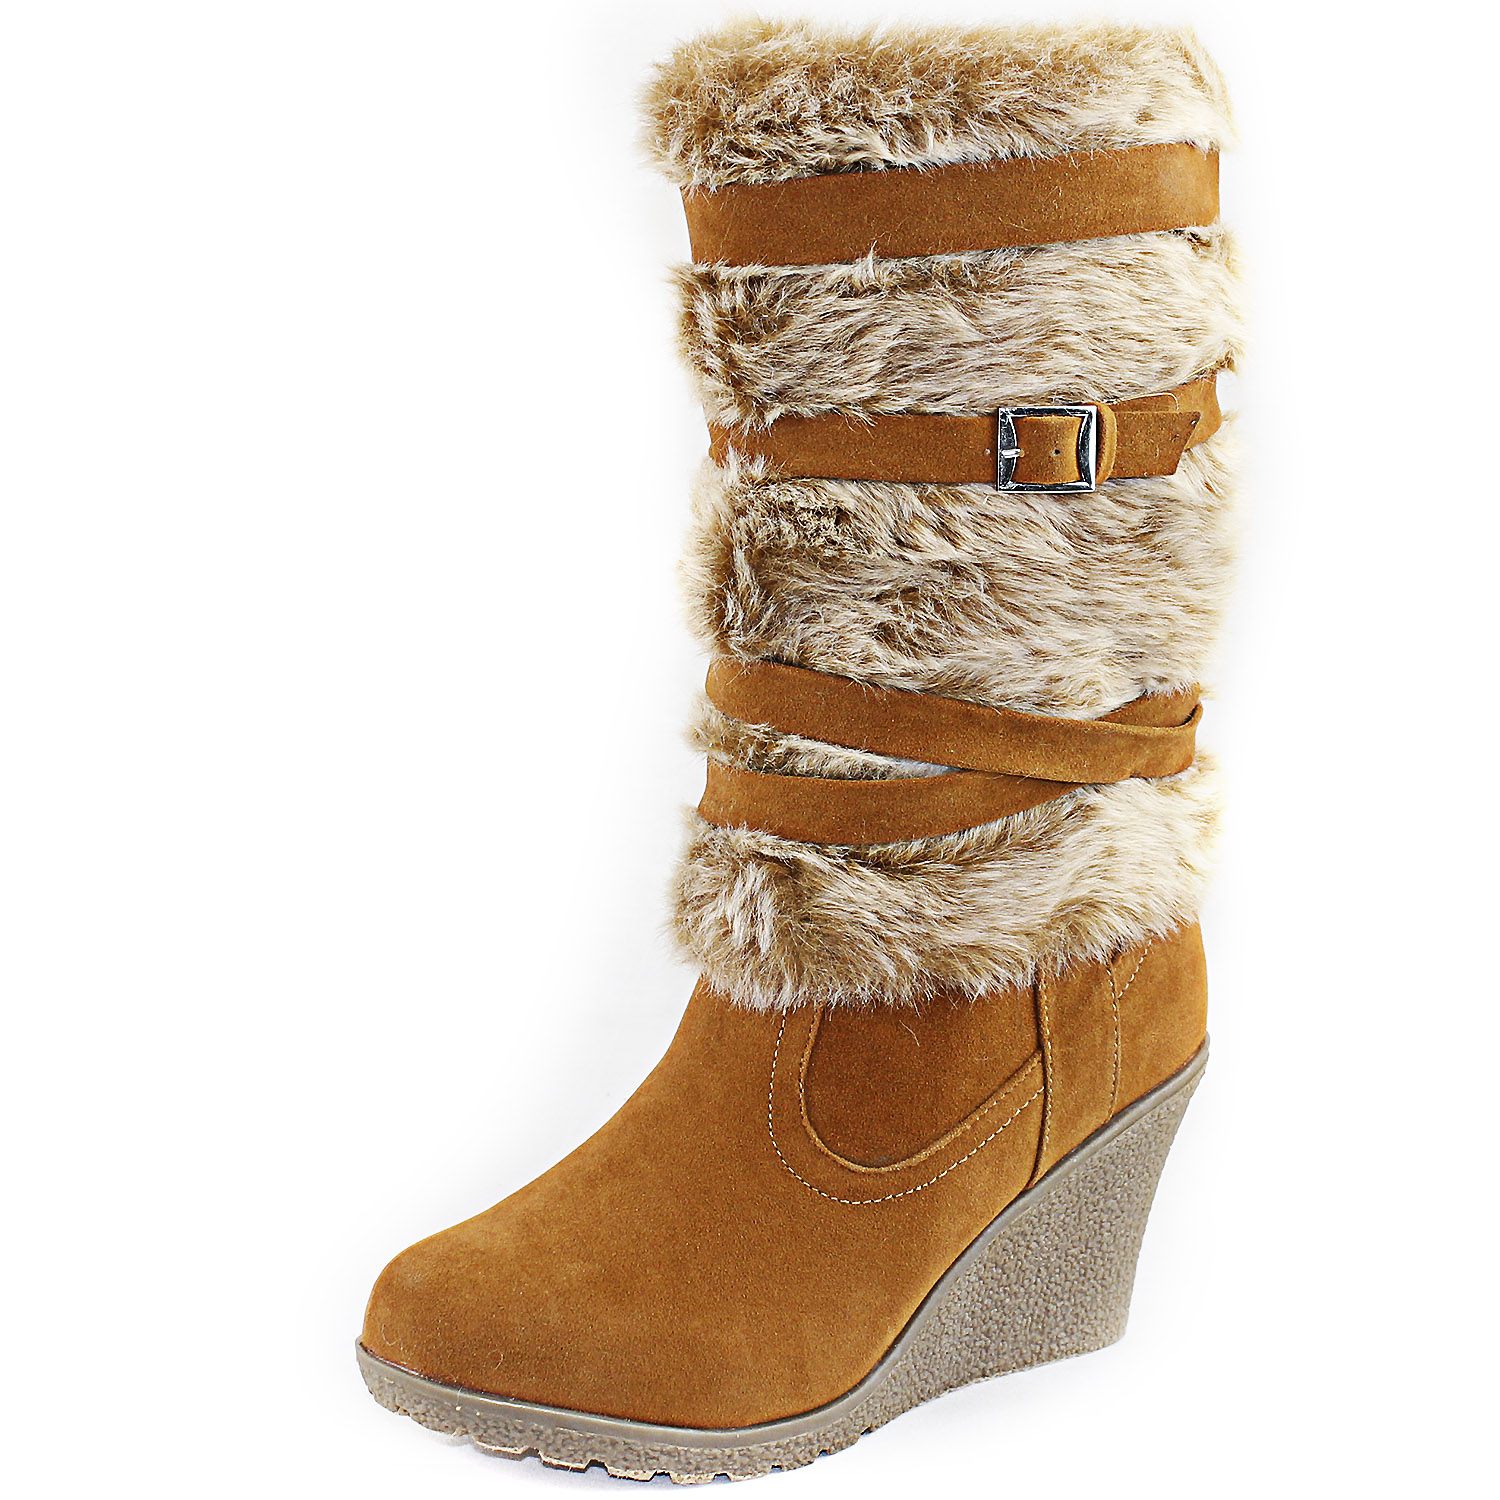 vegan faux fur boots high wedge heel platform zipper